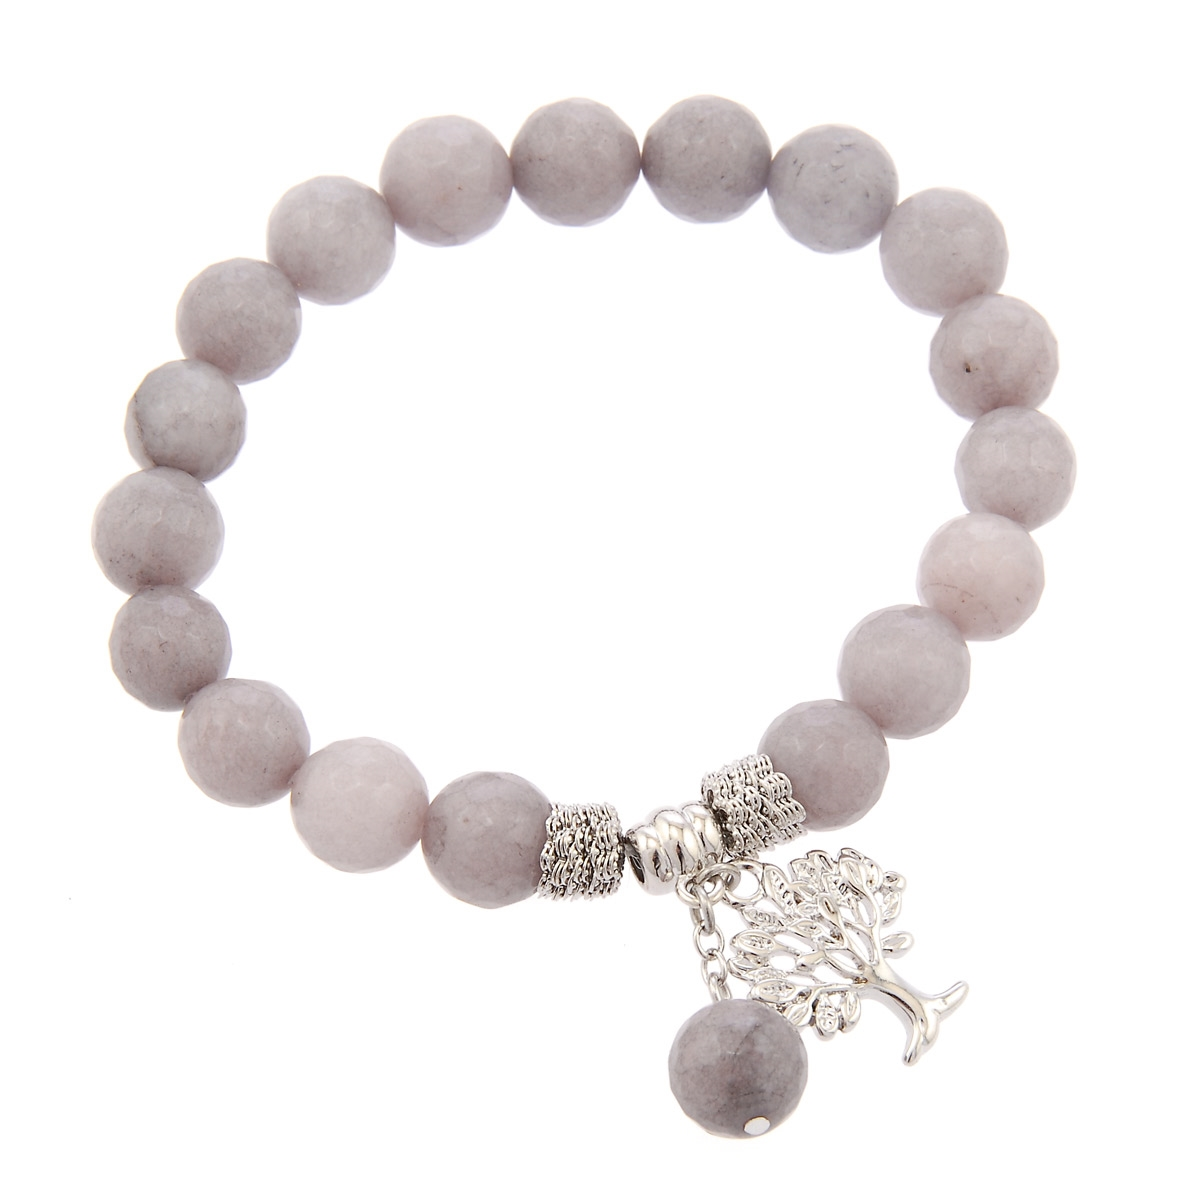 Grey/Silver Beads